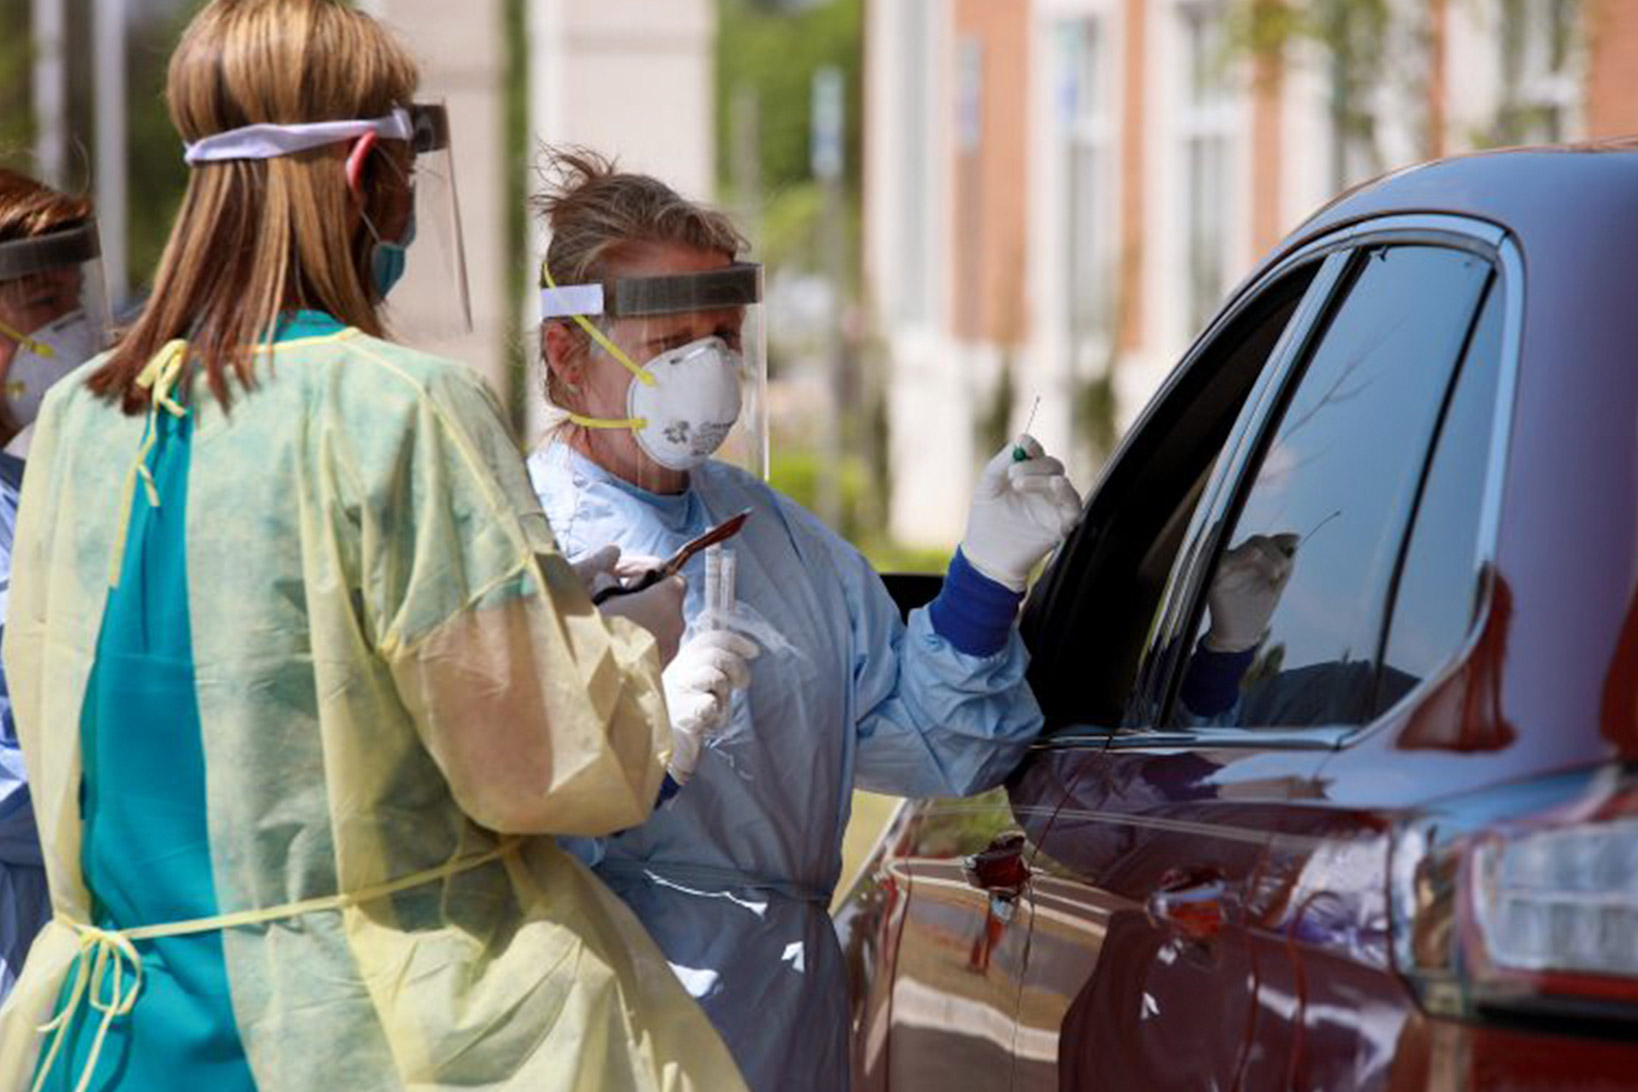 Two health care workers in scrubs, plastic protective gear and masks speak with a person through the driver's window of a vehicle.